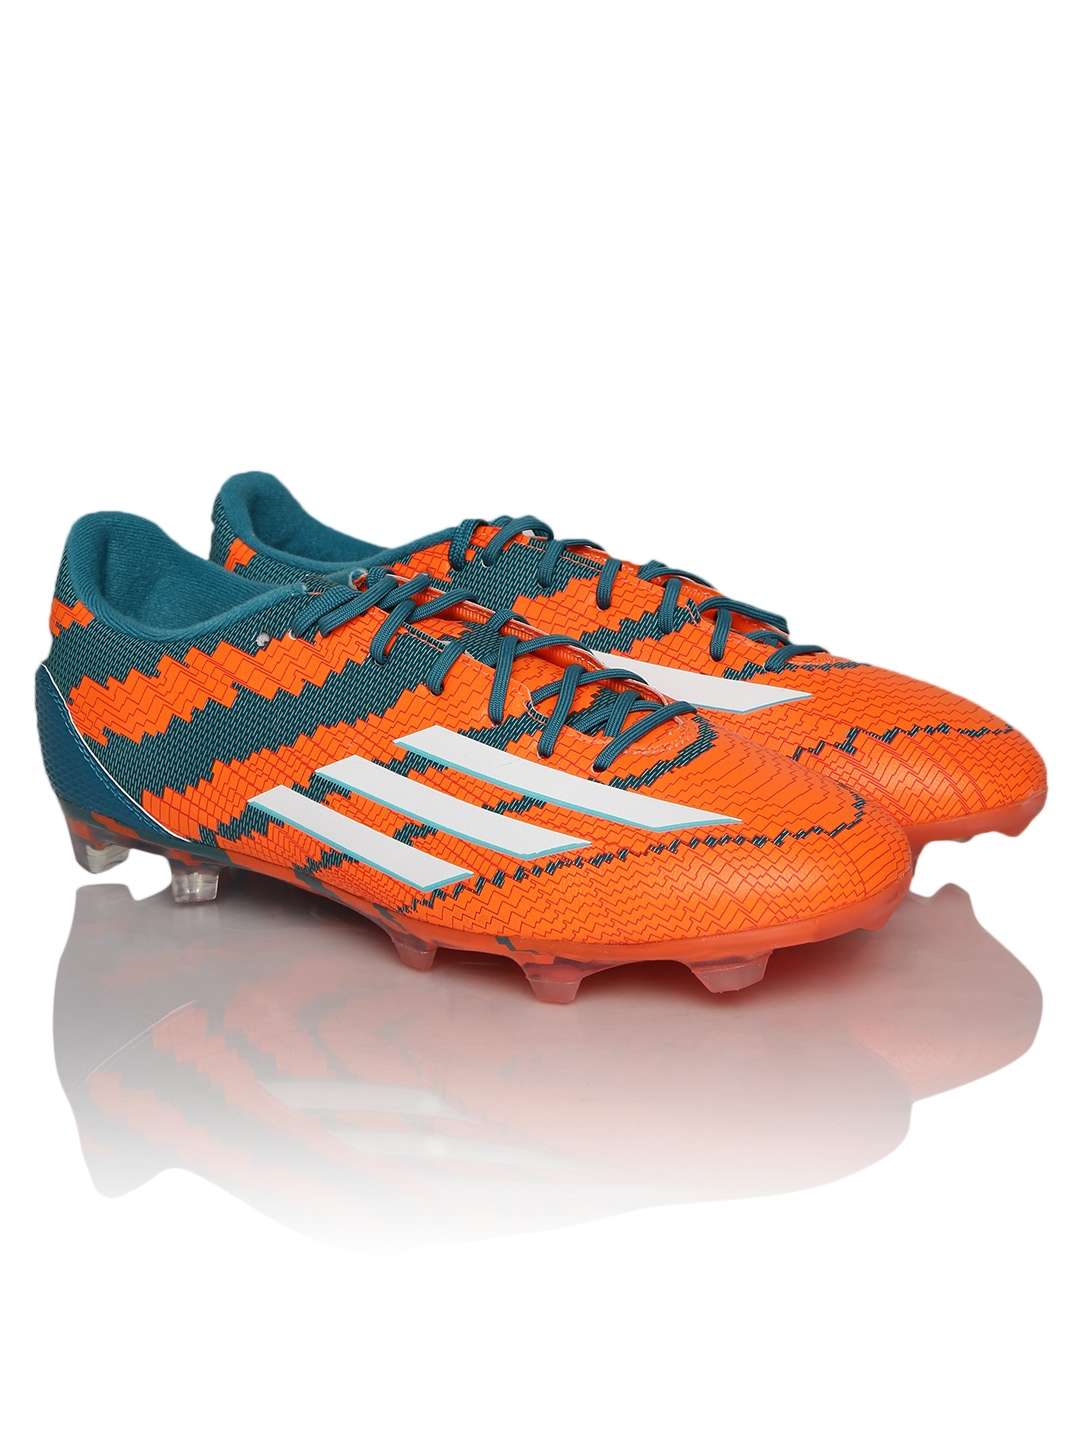 44887bd02c8c4 adidas football shoes price list in india adidas